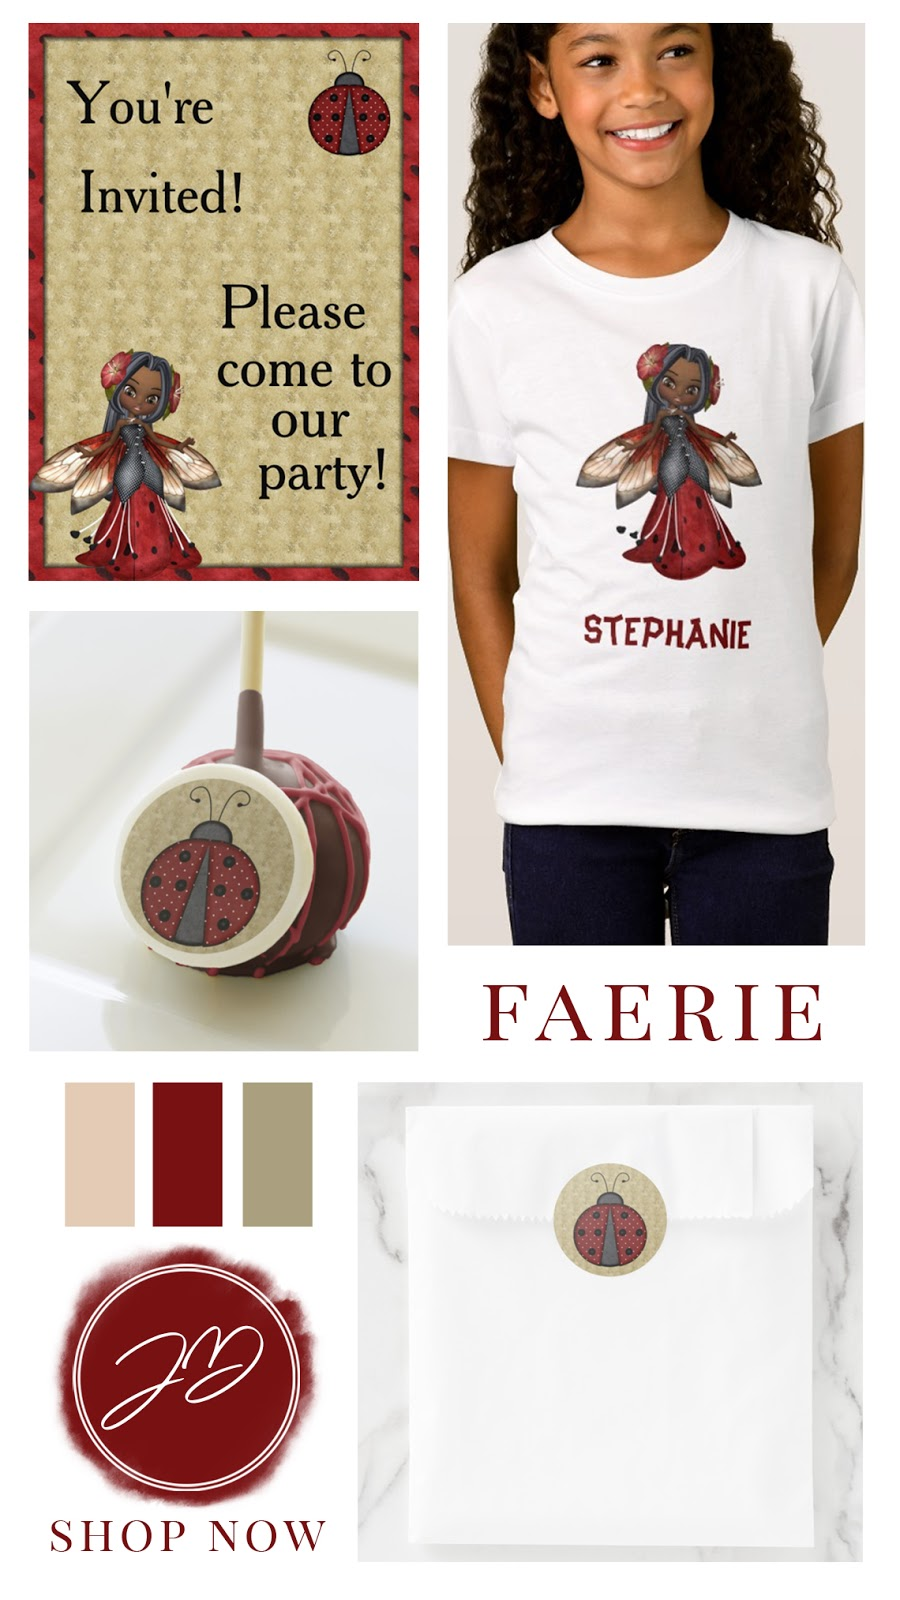 African American ladybug fairy girl's birthday party suite. Personalized apparel, invites, and party favors. In a red black and tan color palette.